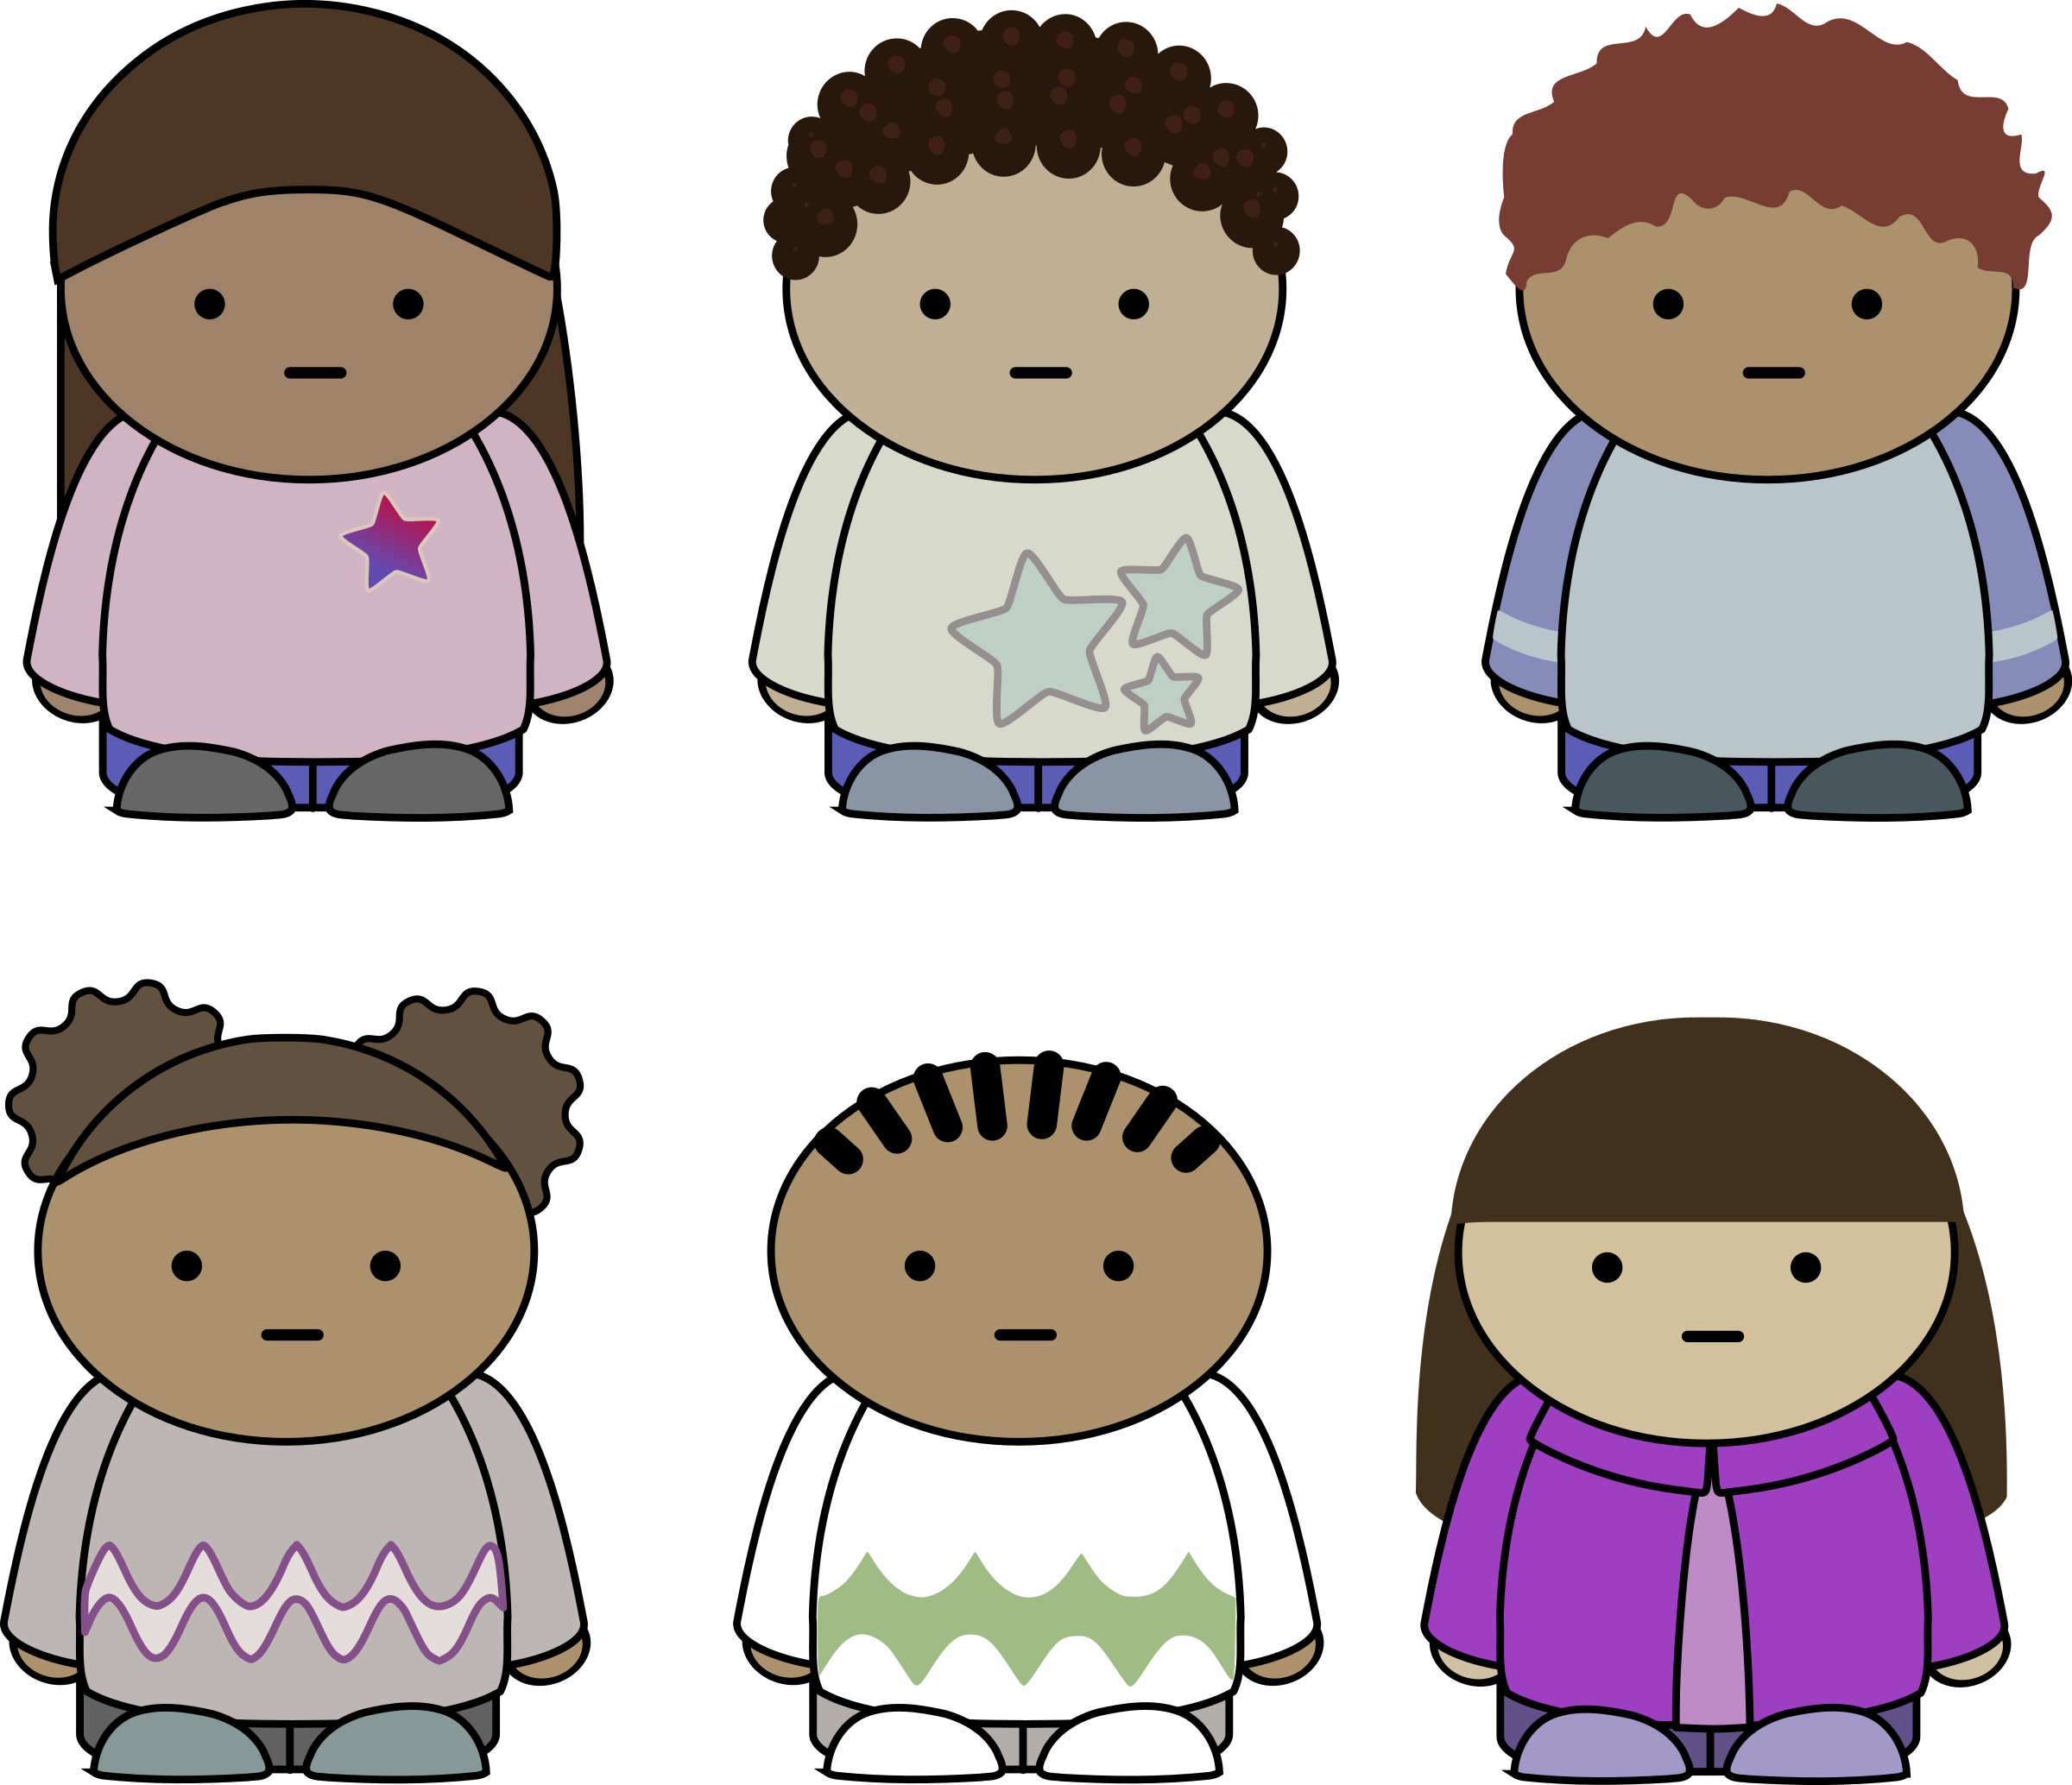 Person clipart simple, Person simple Transparent FREE for.